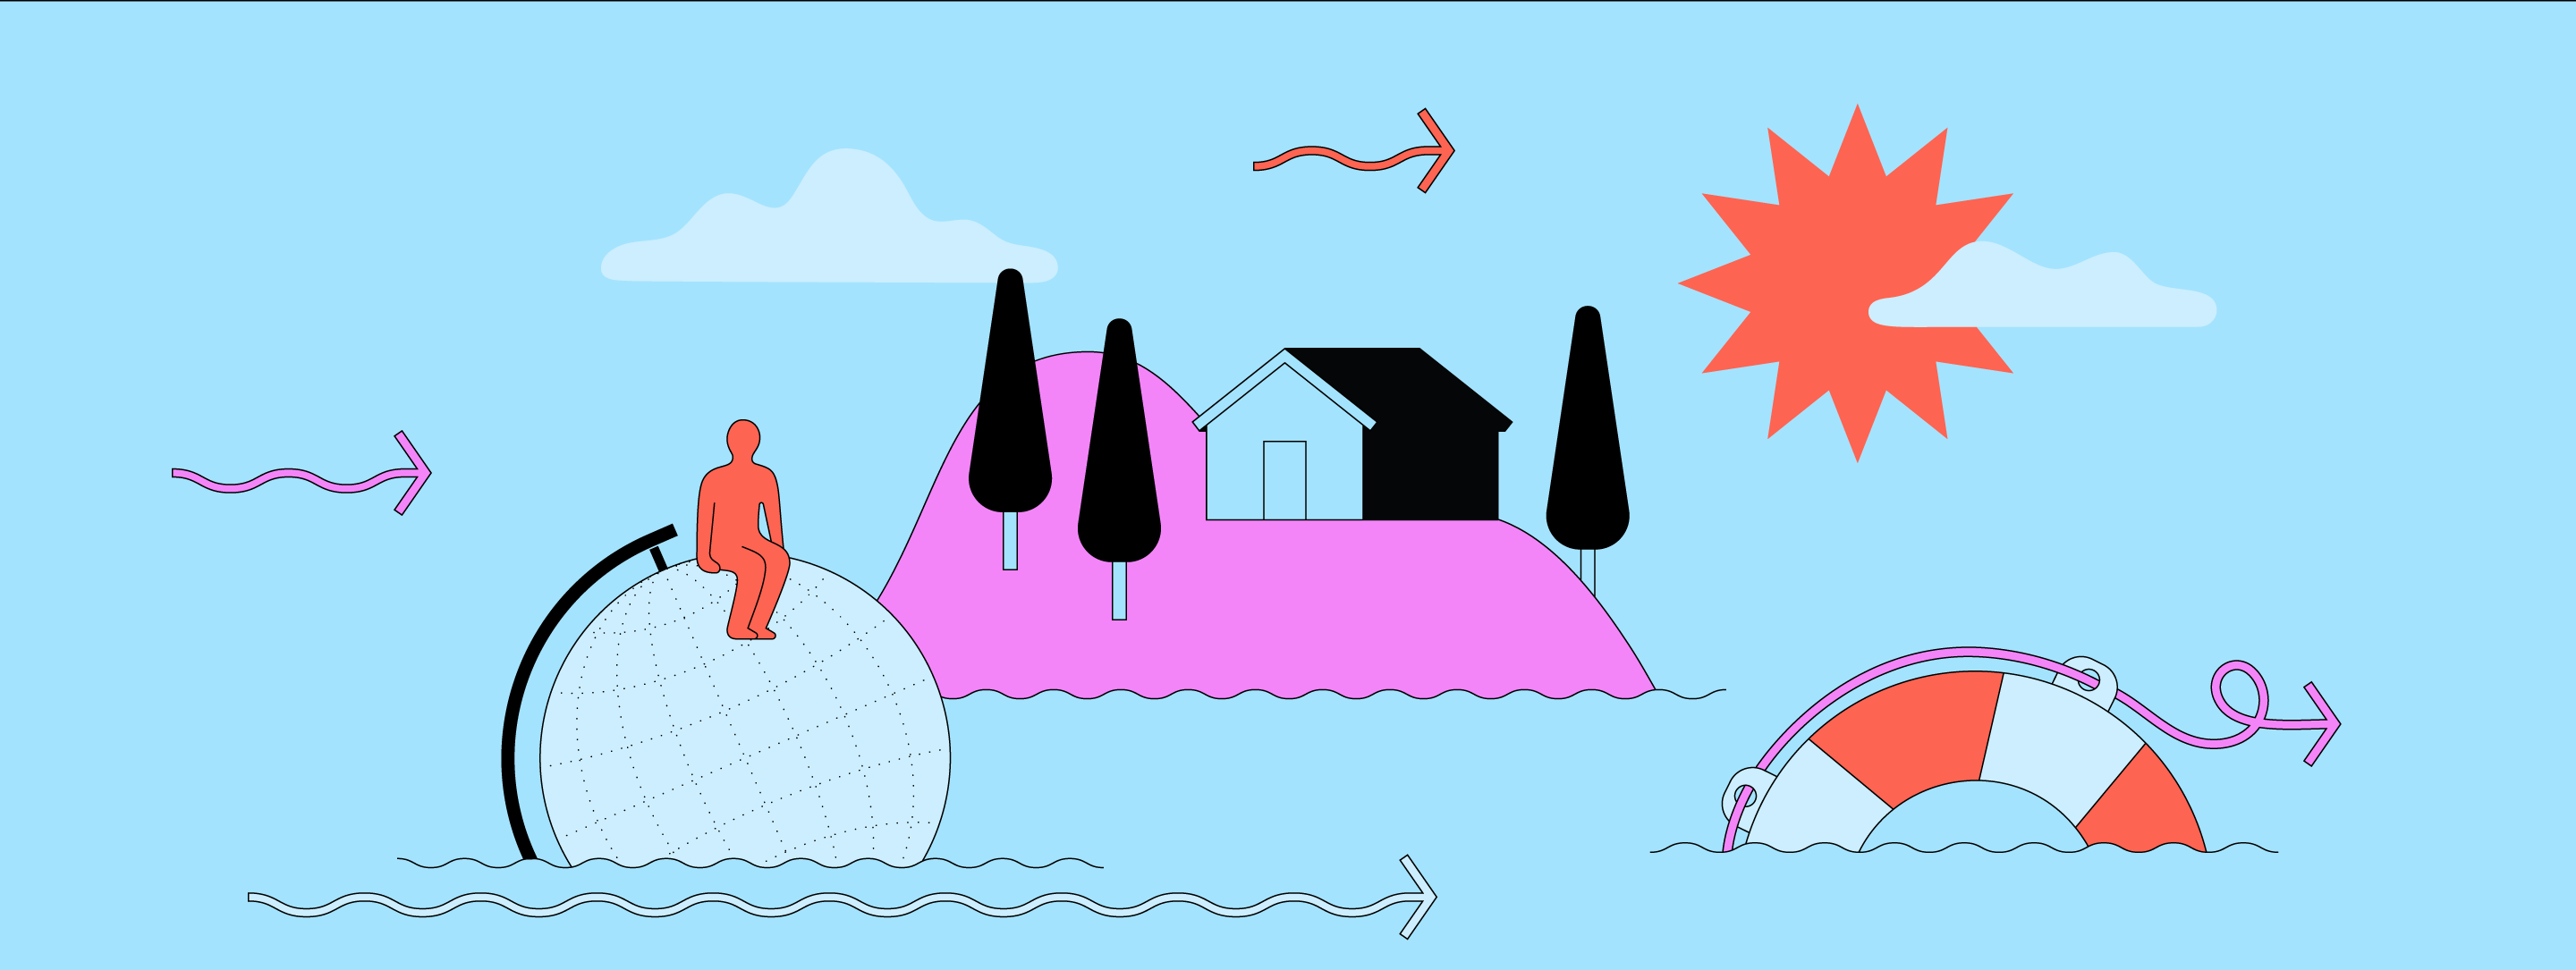 Illustration graphic of the ocean, a lifebuoy, a floating globe with a person sitting on it and an island with a house an three trees on it